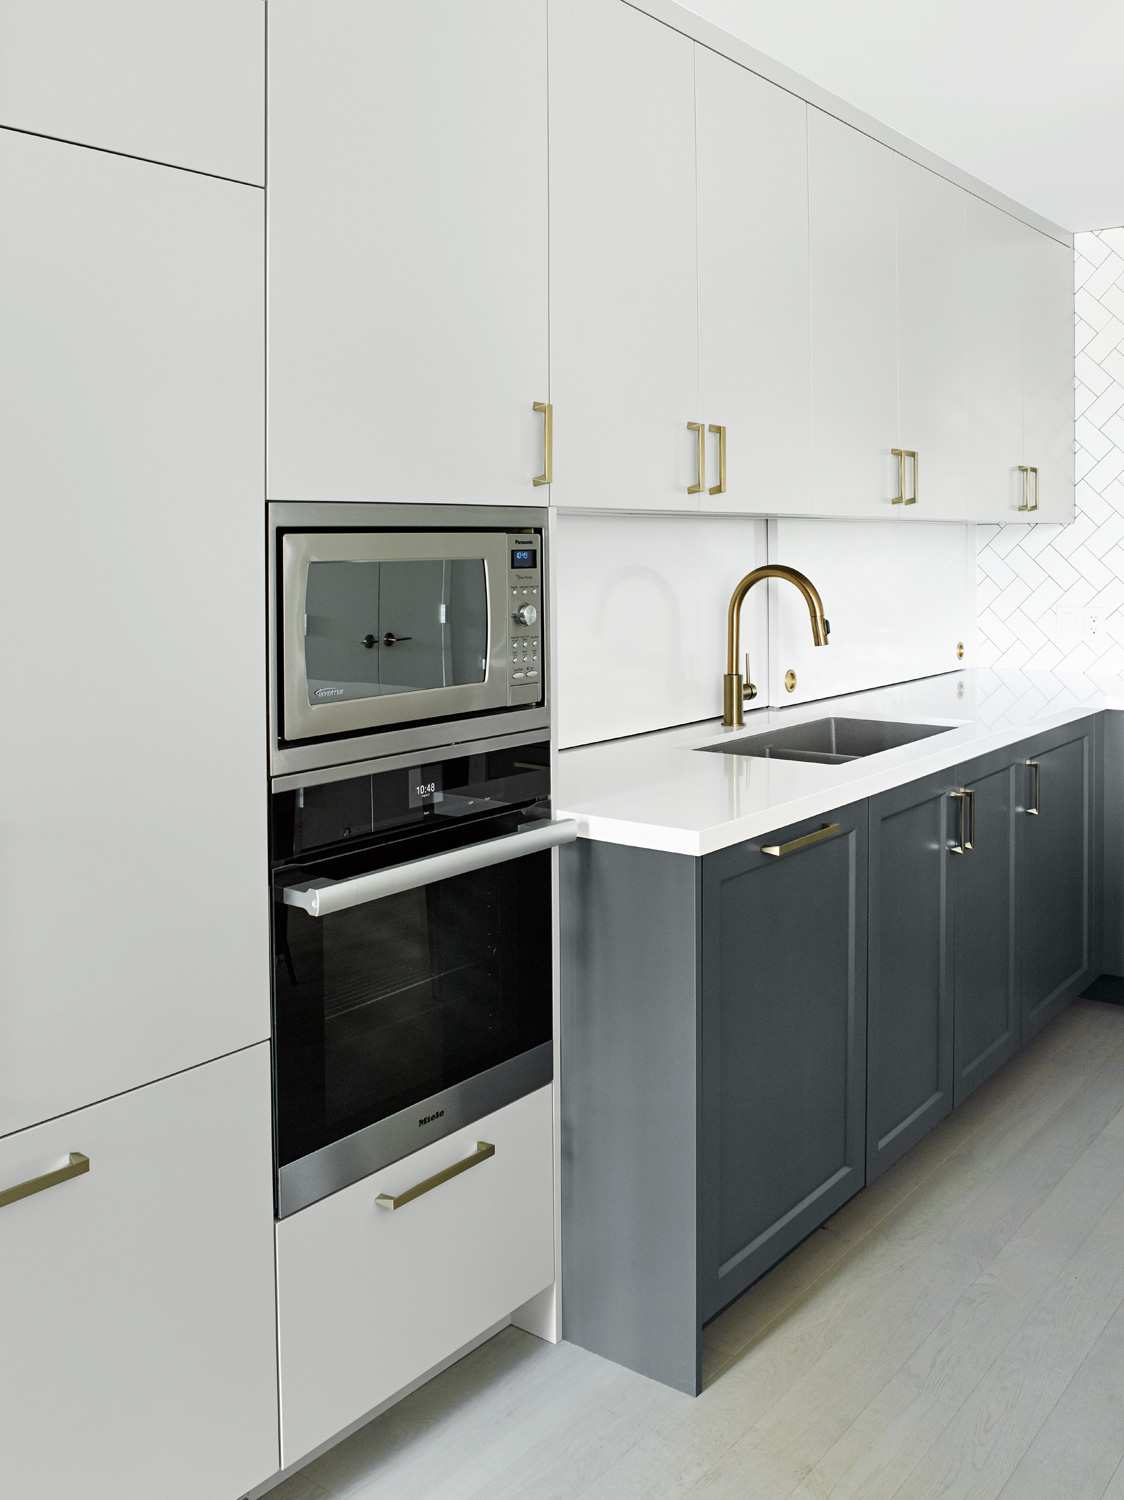 Stacked Ovens in Condo Kitchen